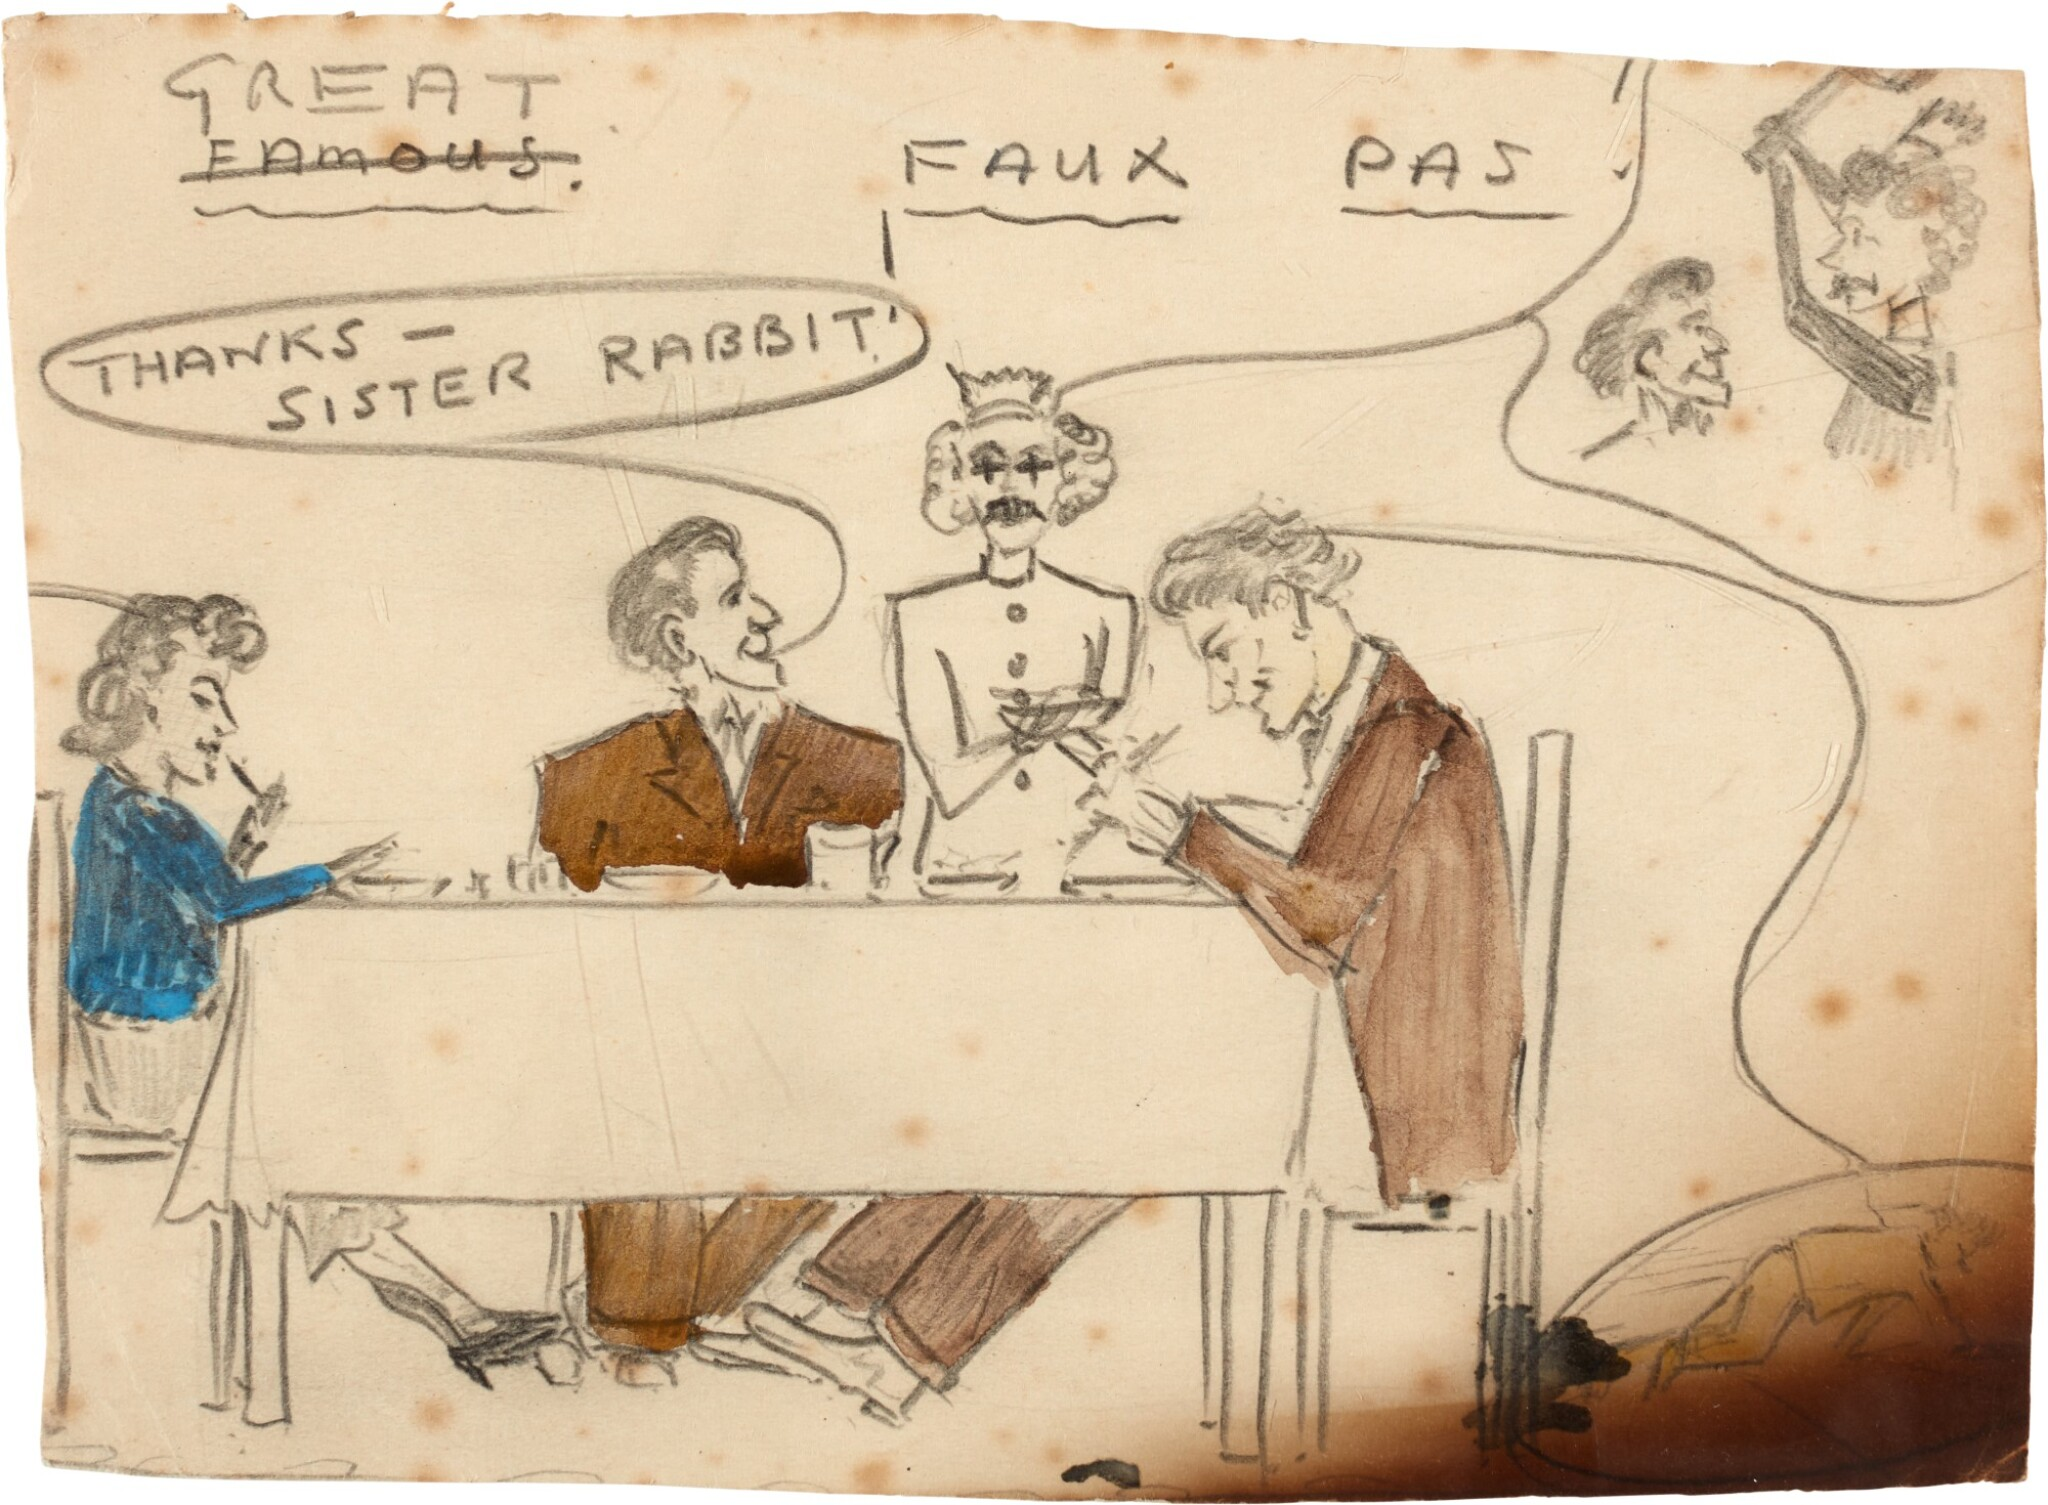 """View full screen - View 1 of Lot 44. Sylvia Plath   Pencil sketch entitled """"Great Faux Pas""""."""